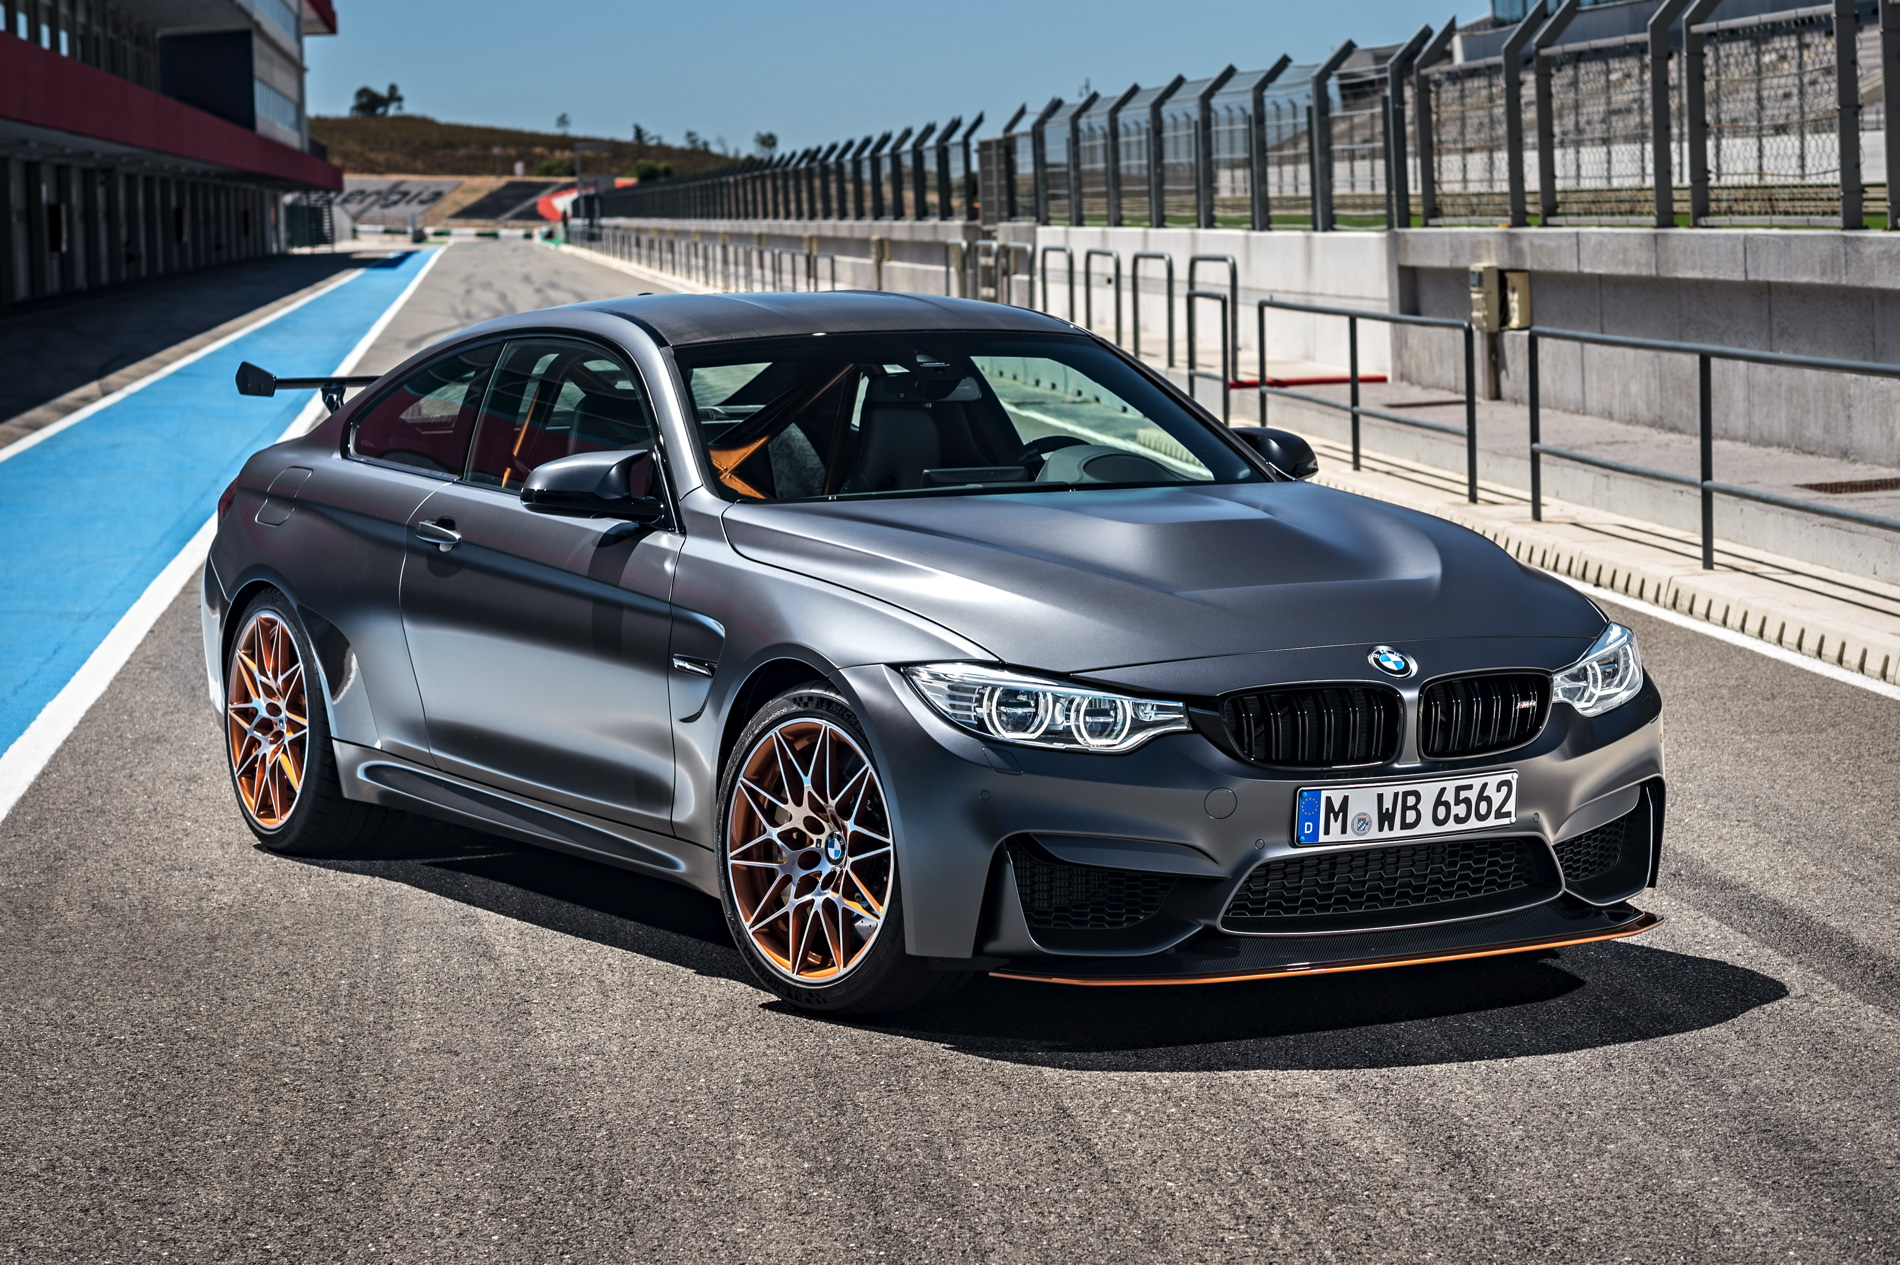 2016 BMW M4 GTS images 1900x1200 wallpaper 38